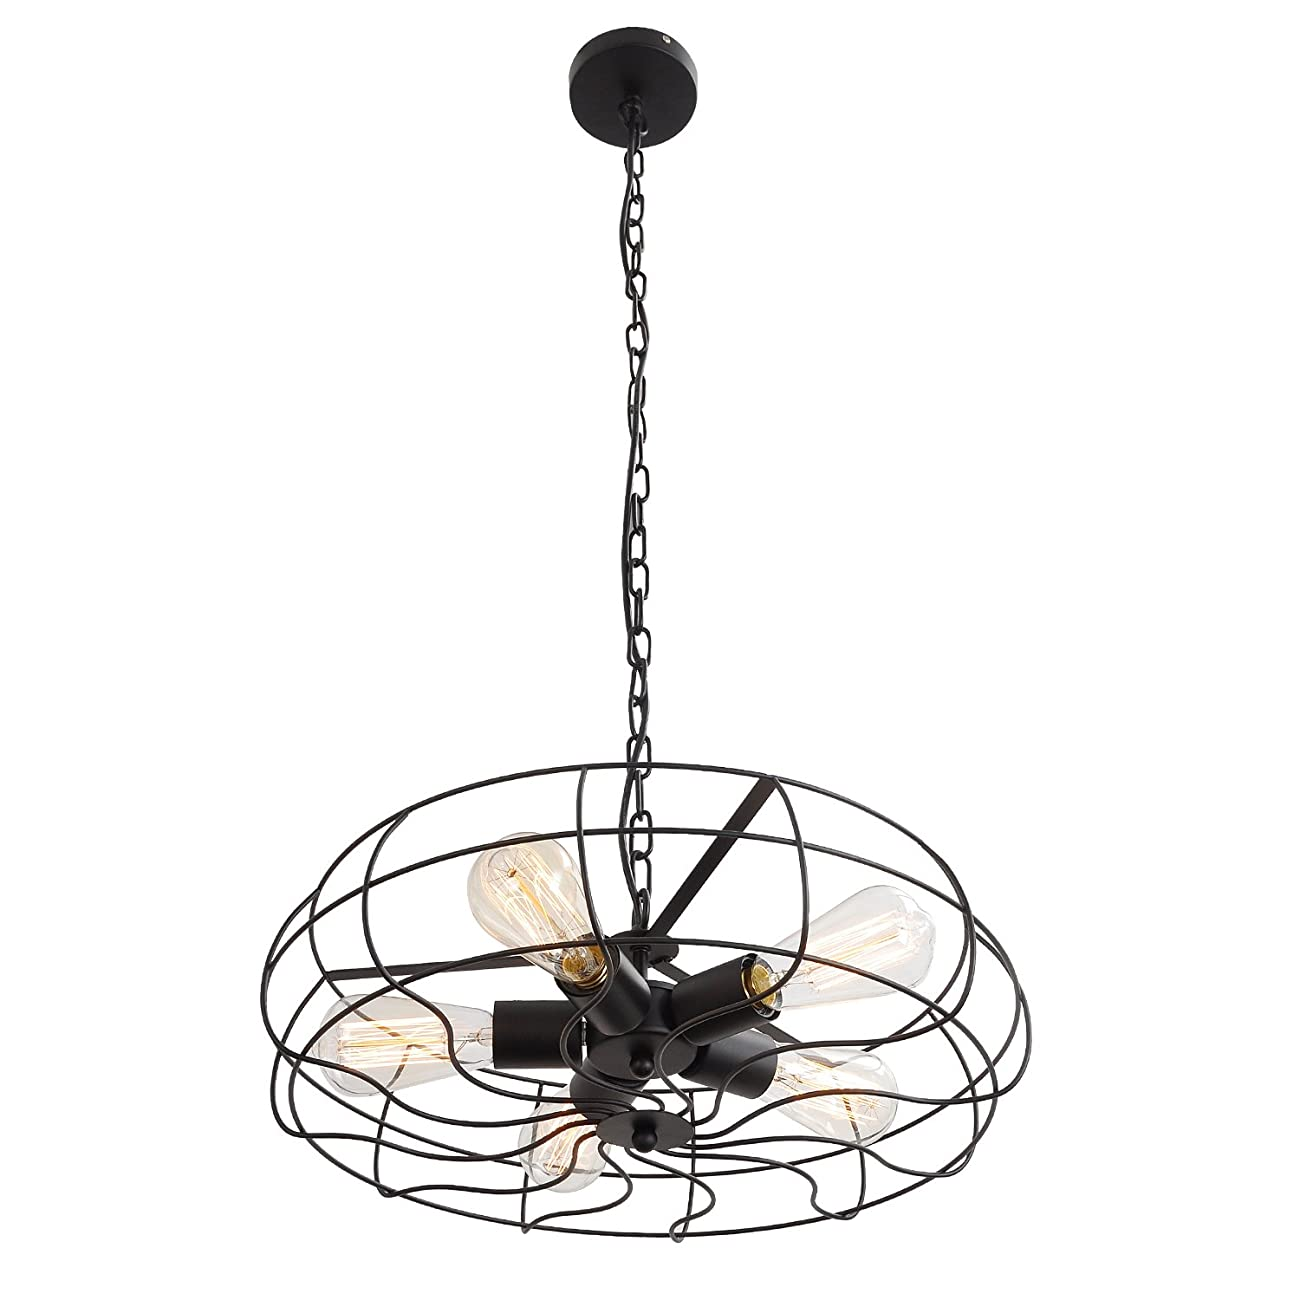 UNITARY BRAND Vintage Barn Metal Hanging Ceiling Chandelier Max. 200W With 5 Lights Painted Finish 0